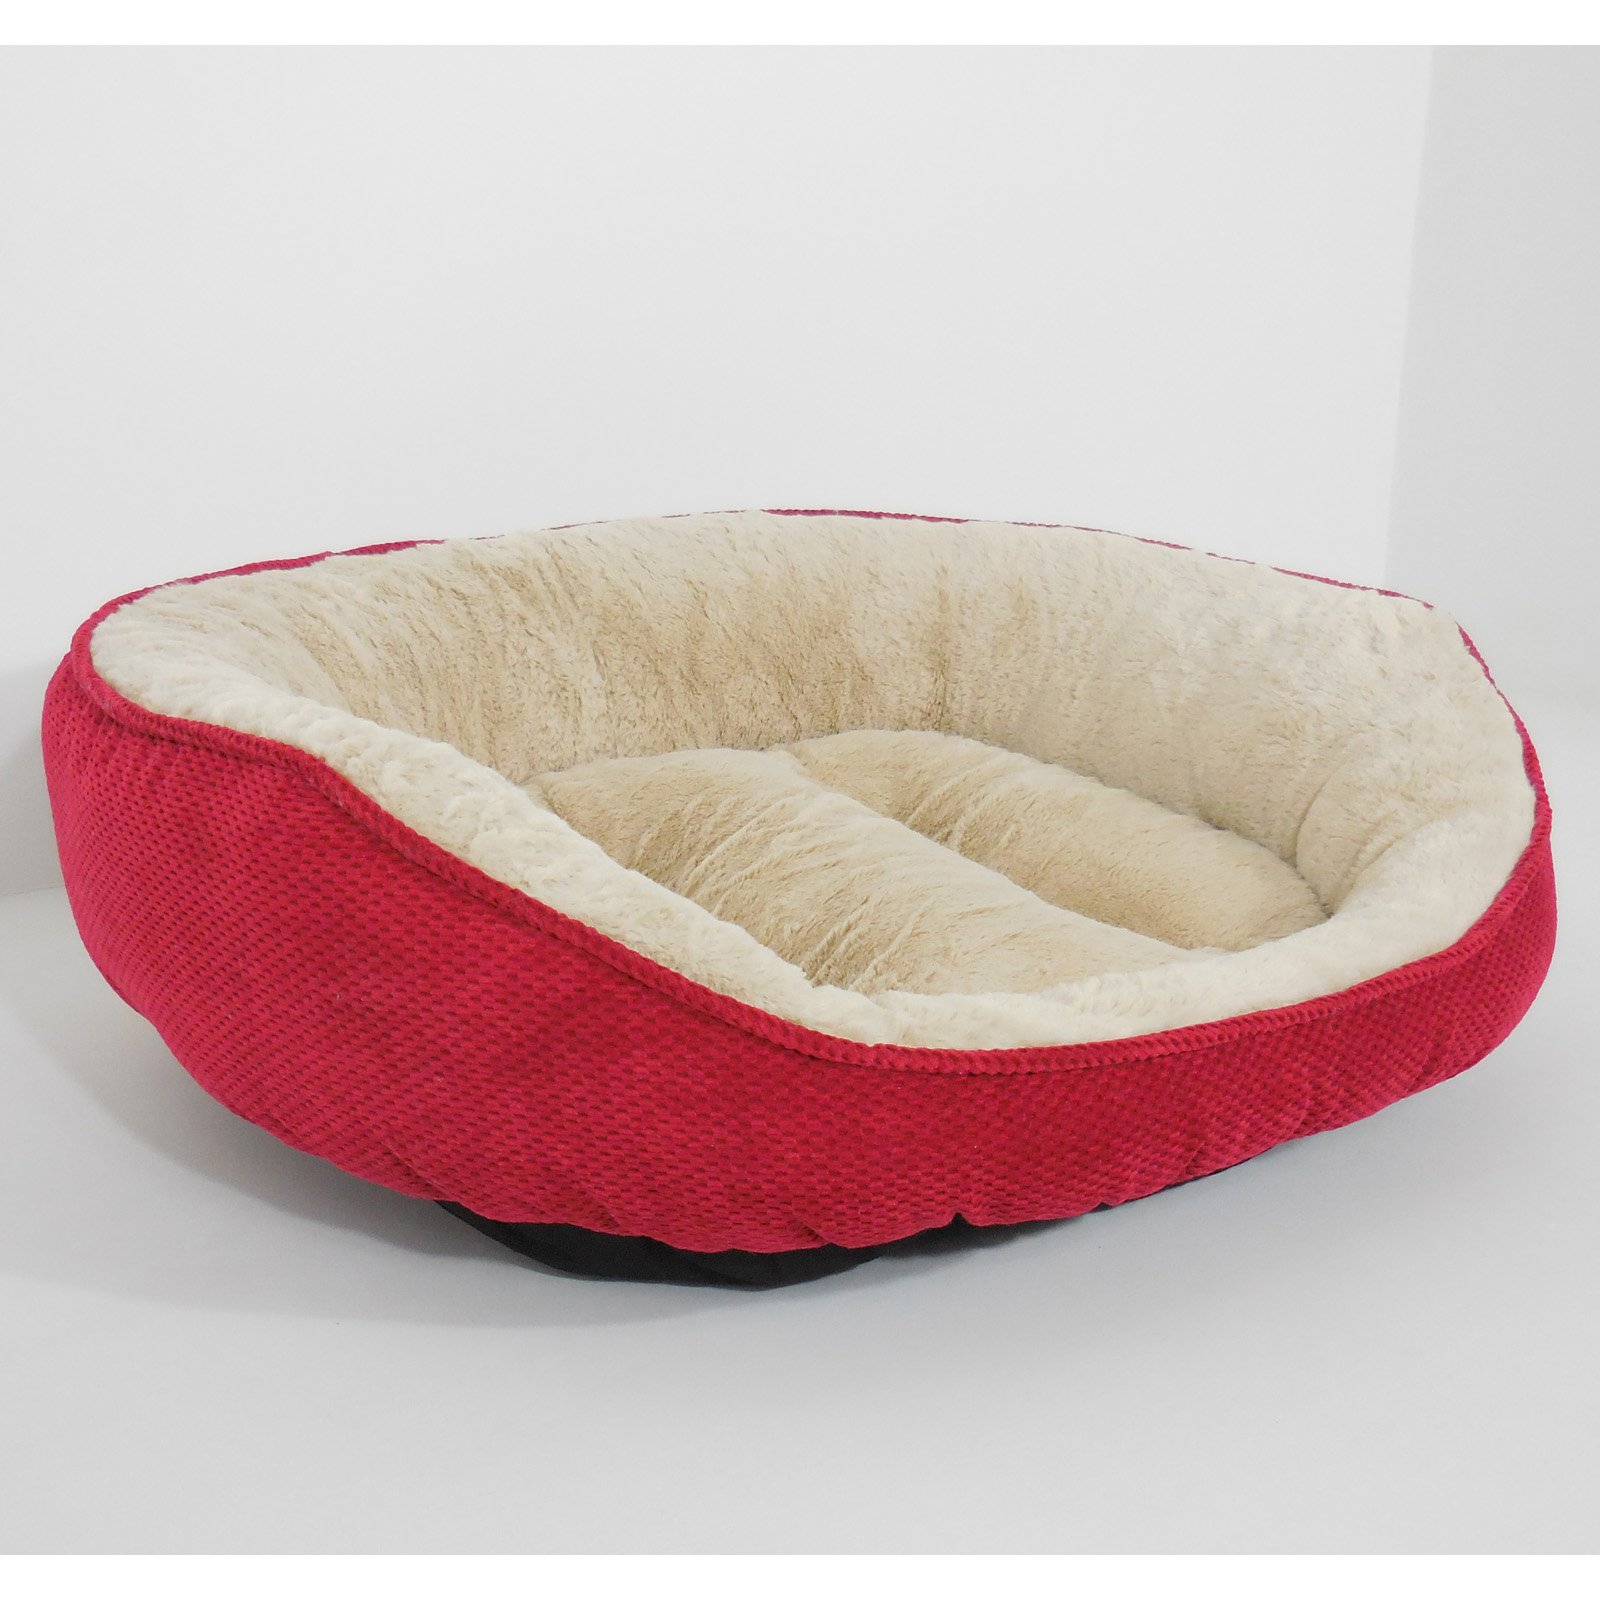 Thermatec Self-Warming Dreamer Pet Bed